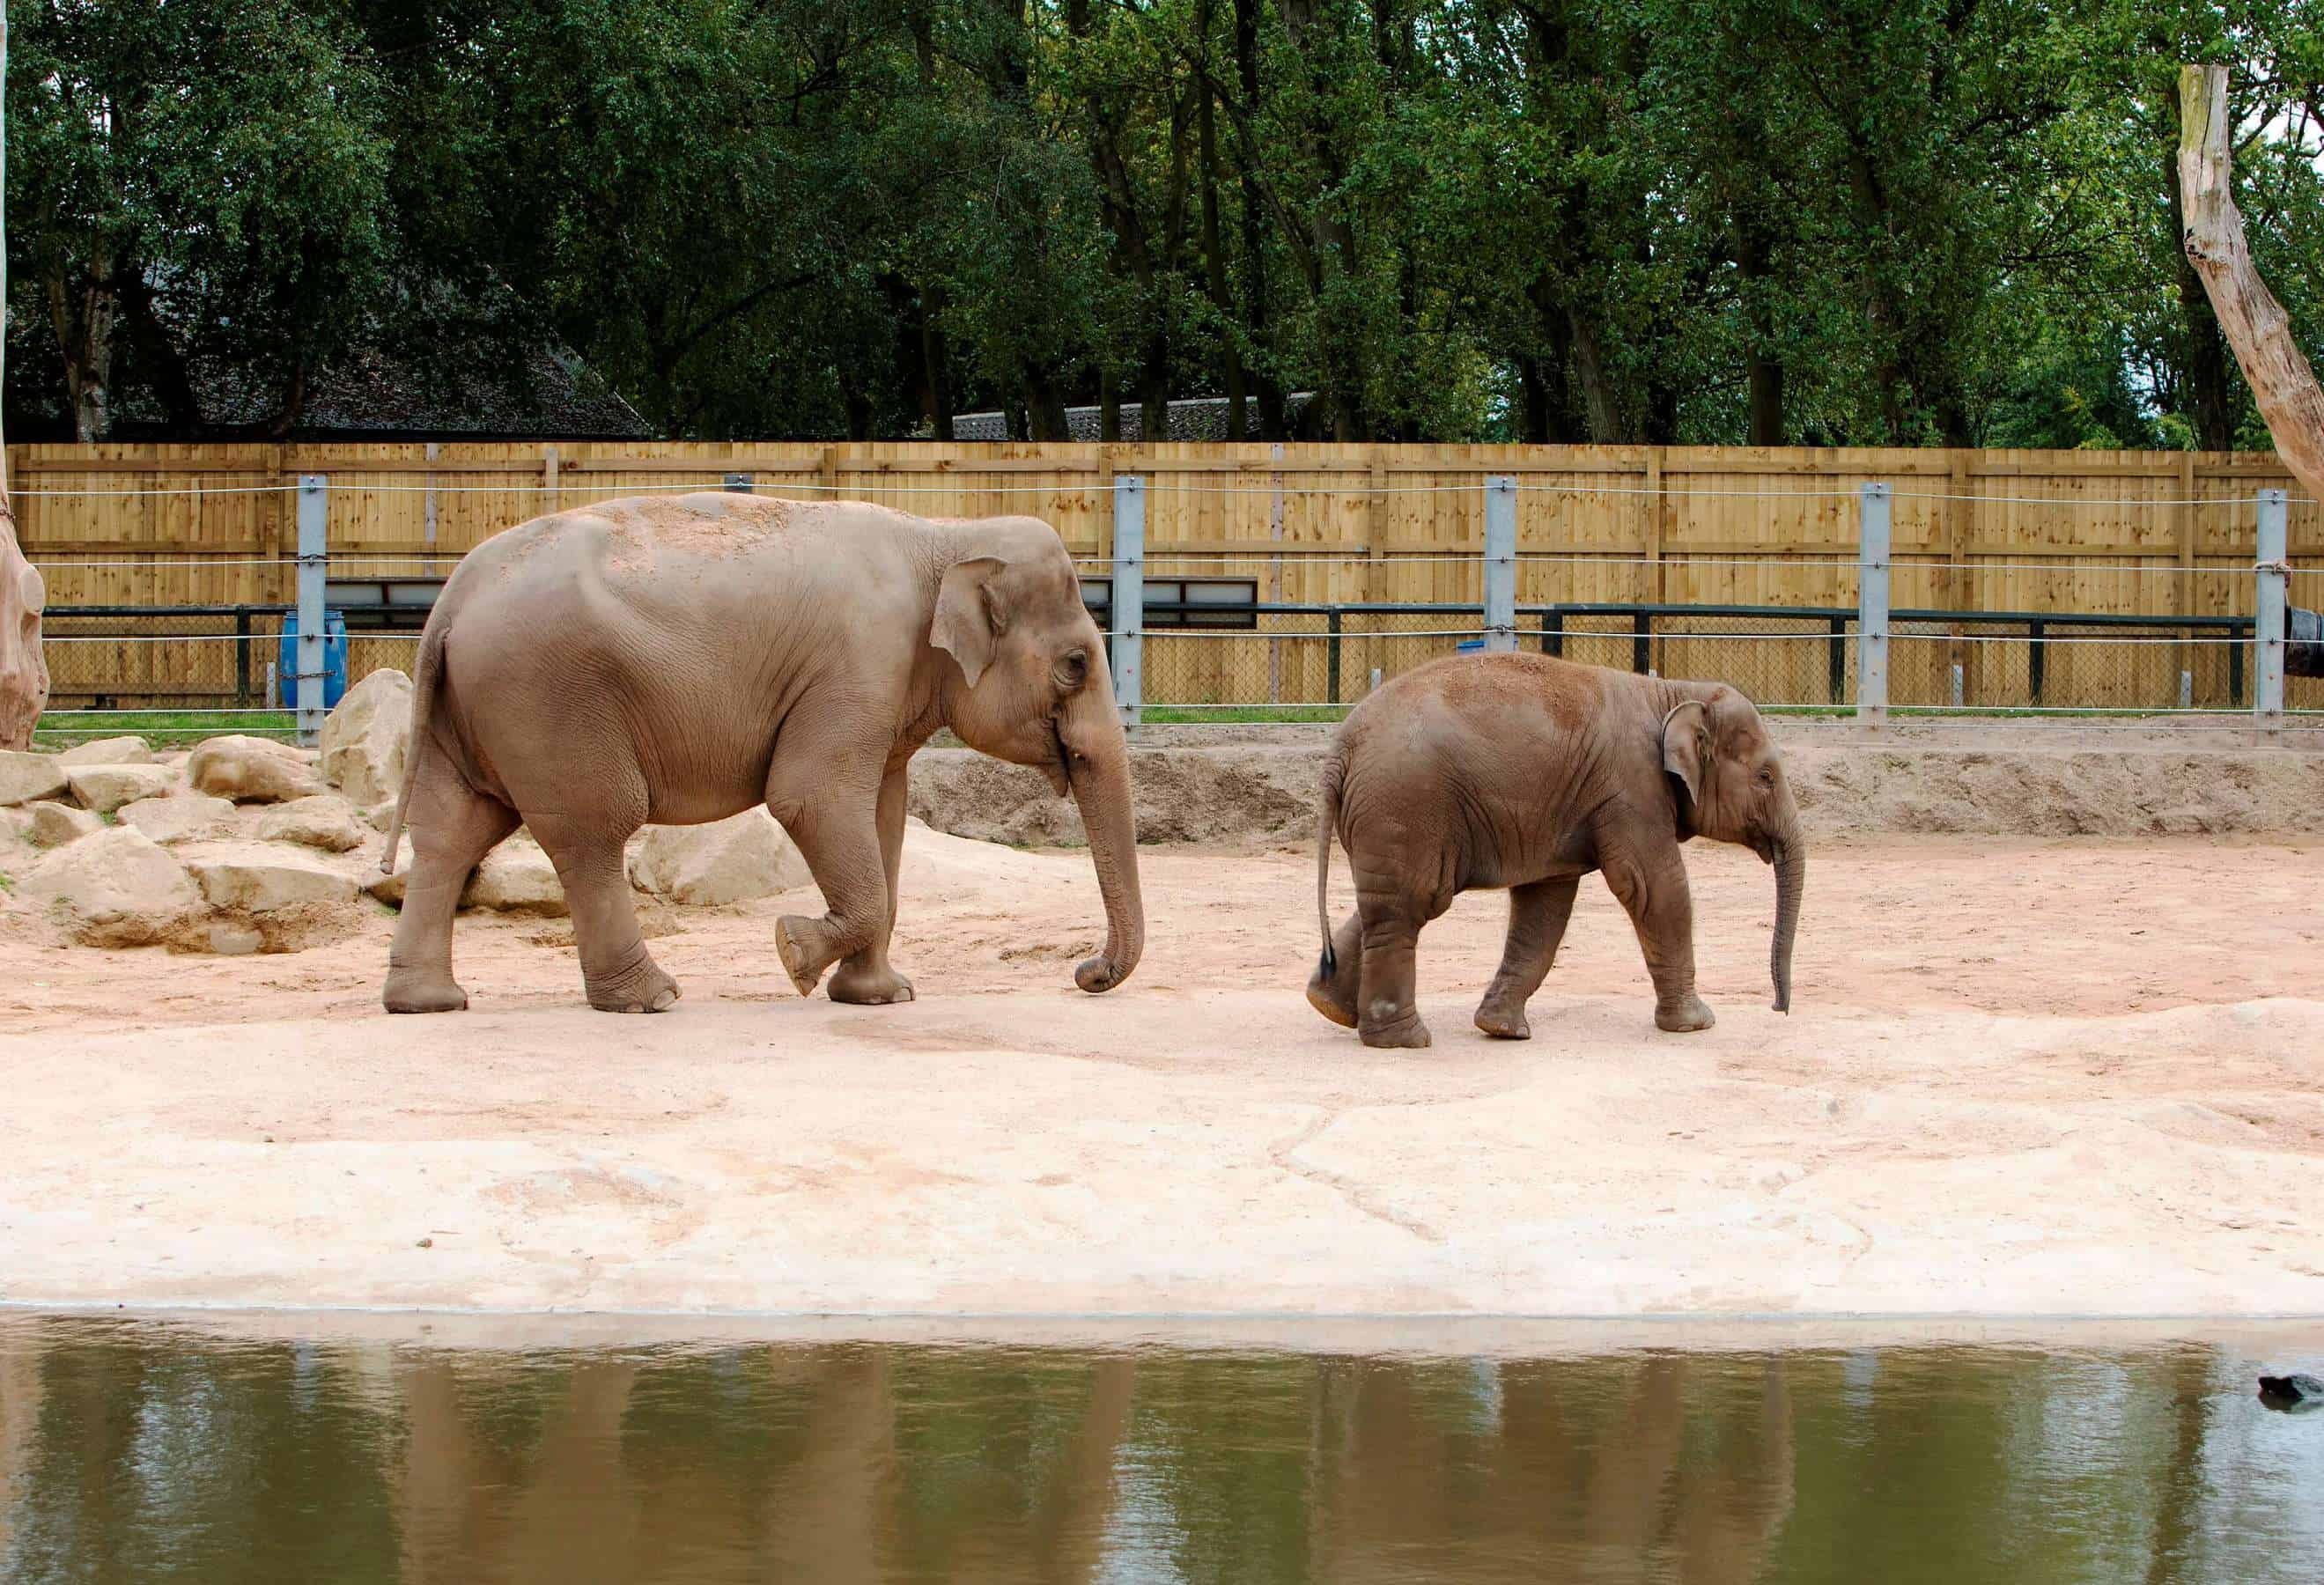 The elephants  at Twycross Zoo.Photographs: Lucy Ray/Twycross Zoo